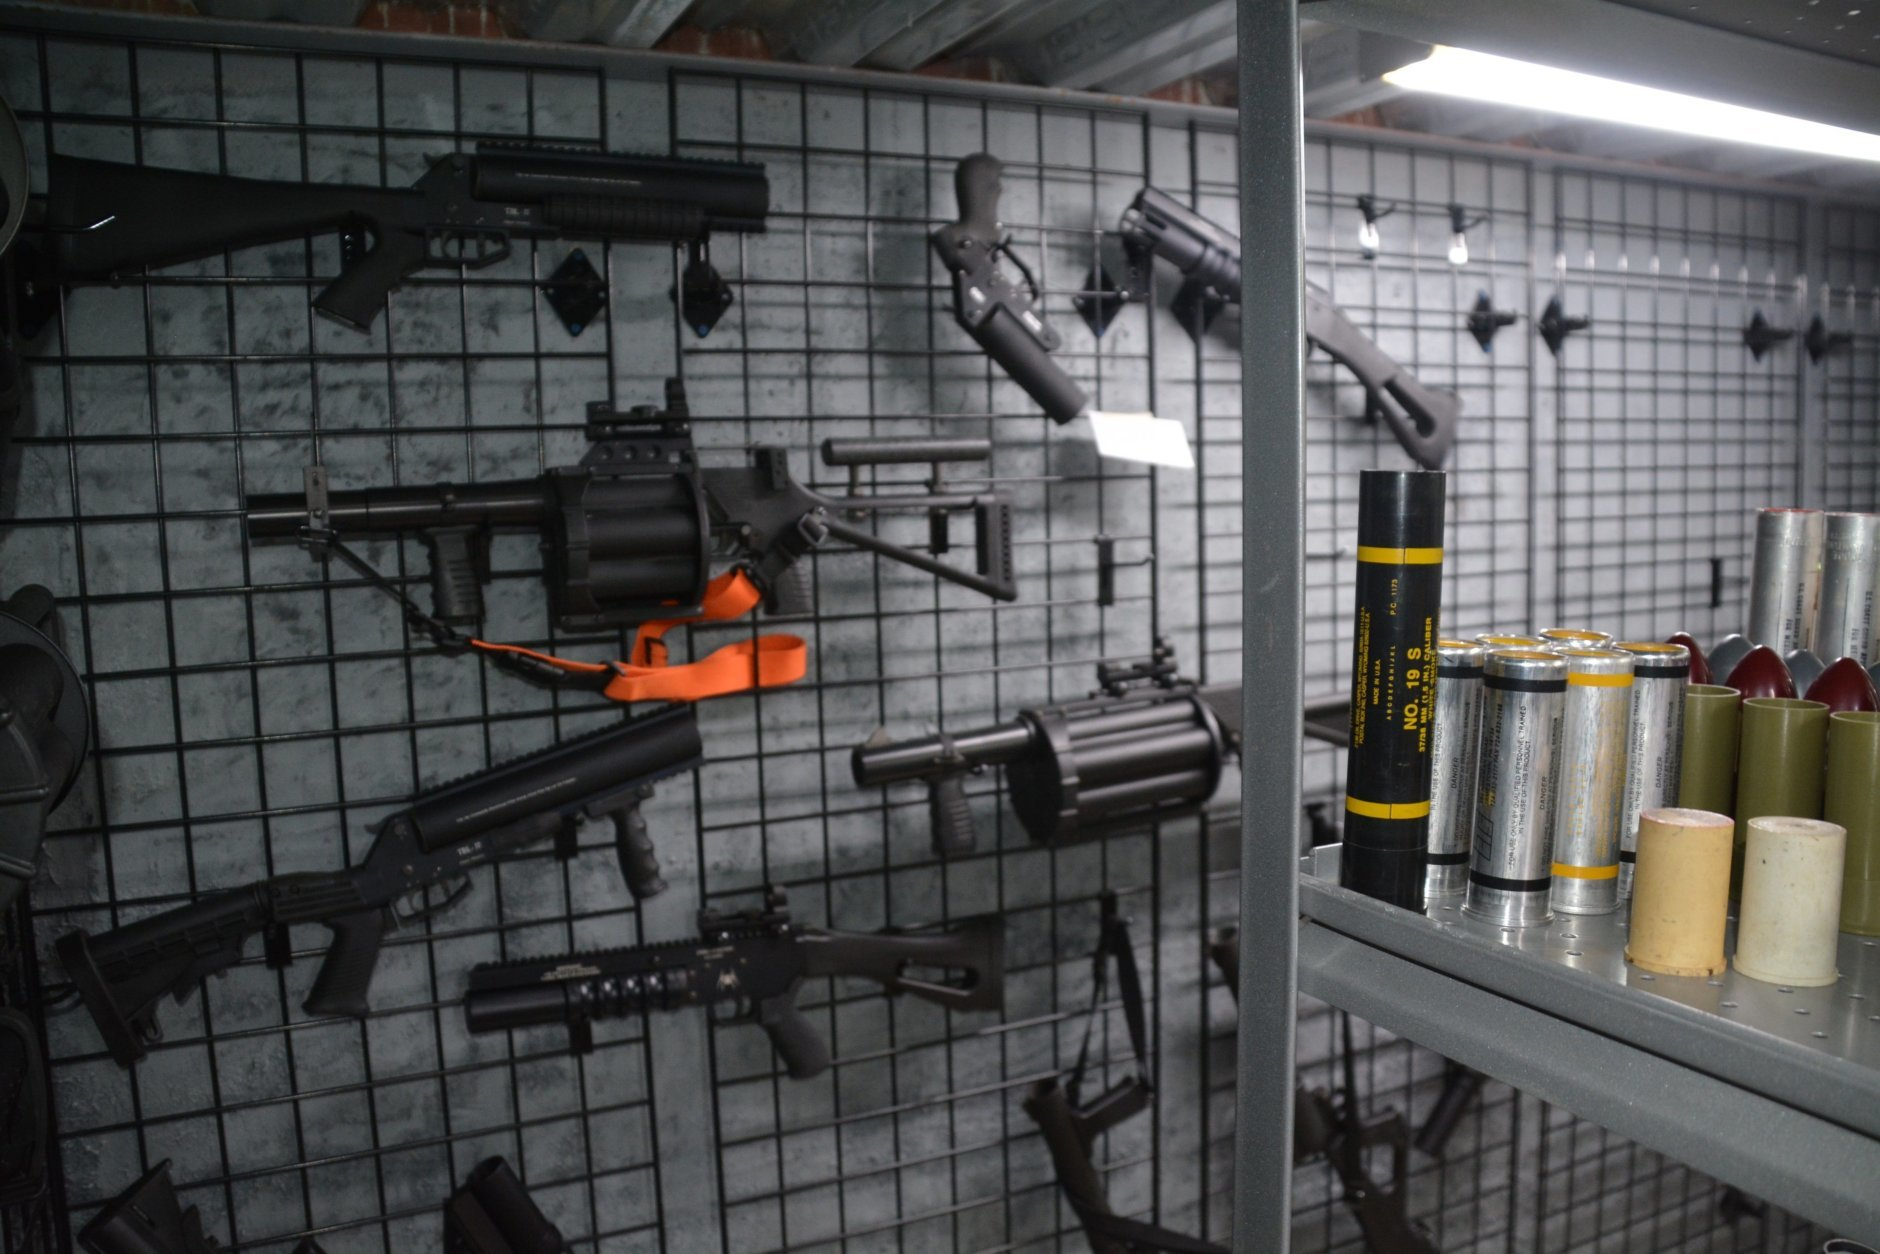 A collection of guns and explosive devices that Bailey had stored in his bunker. (Photo courtesy of U.S. Attorney's Office)